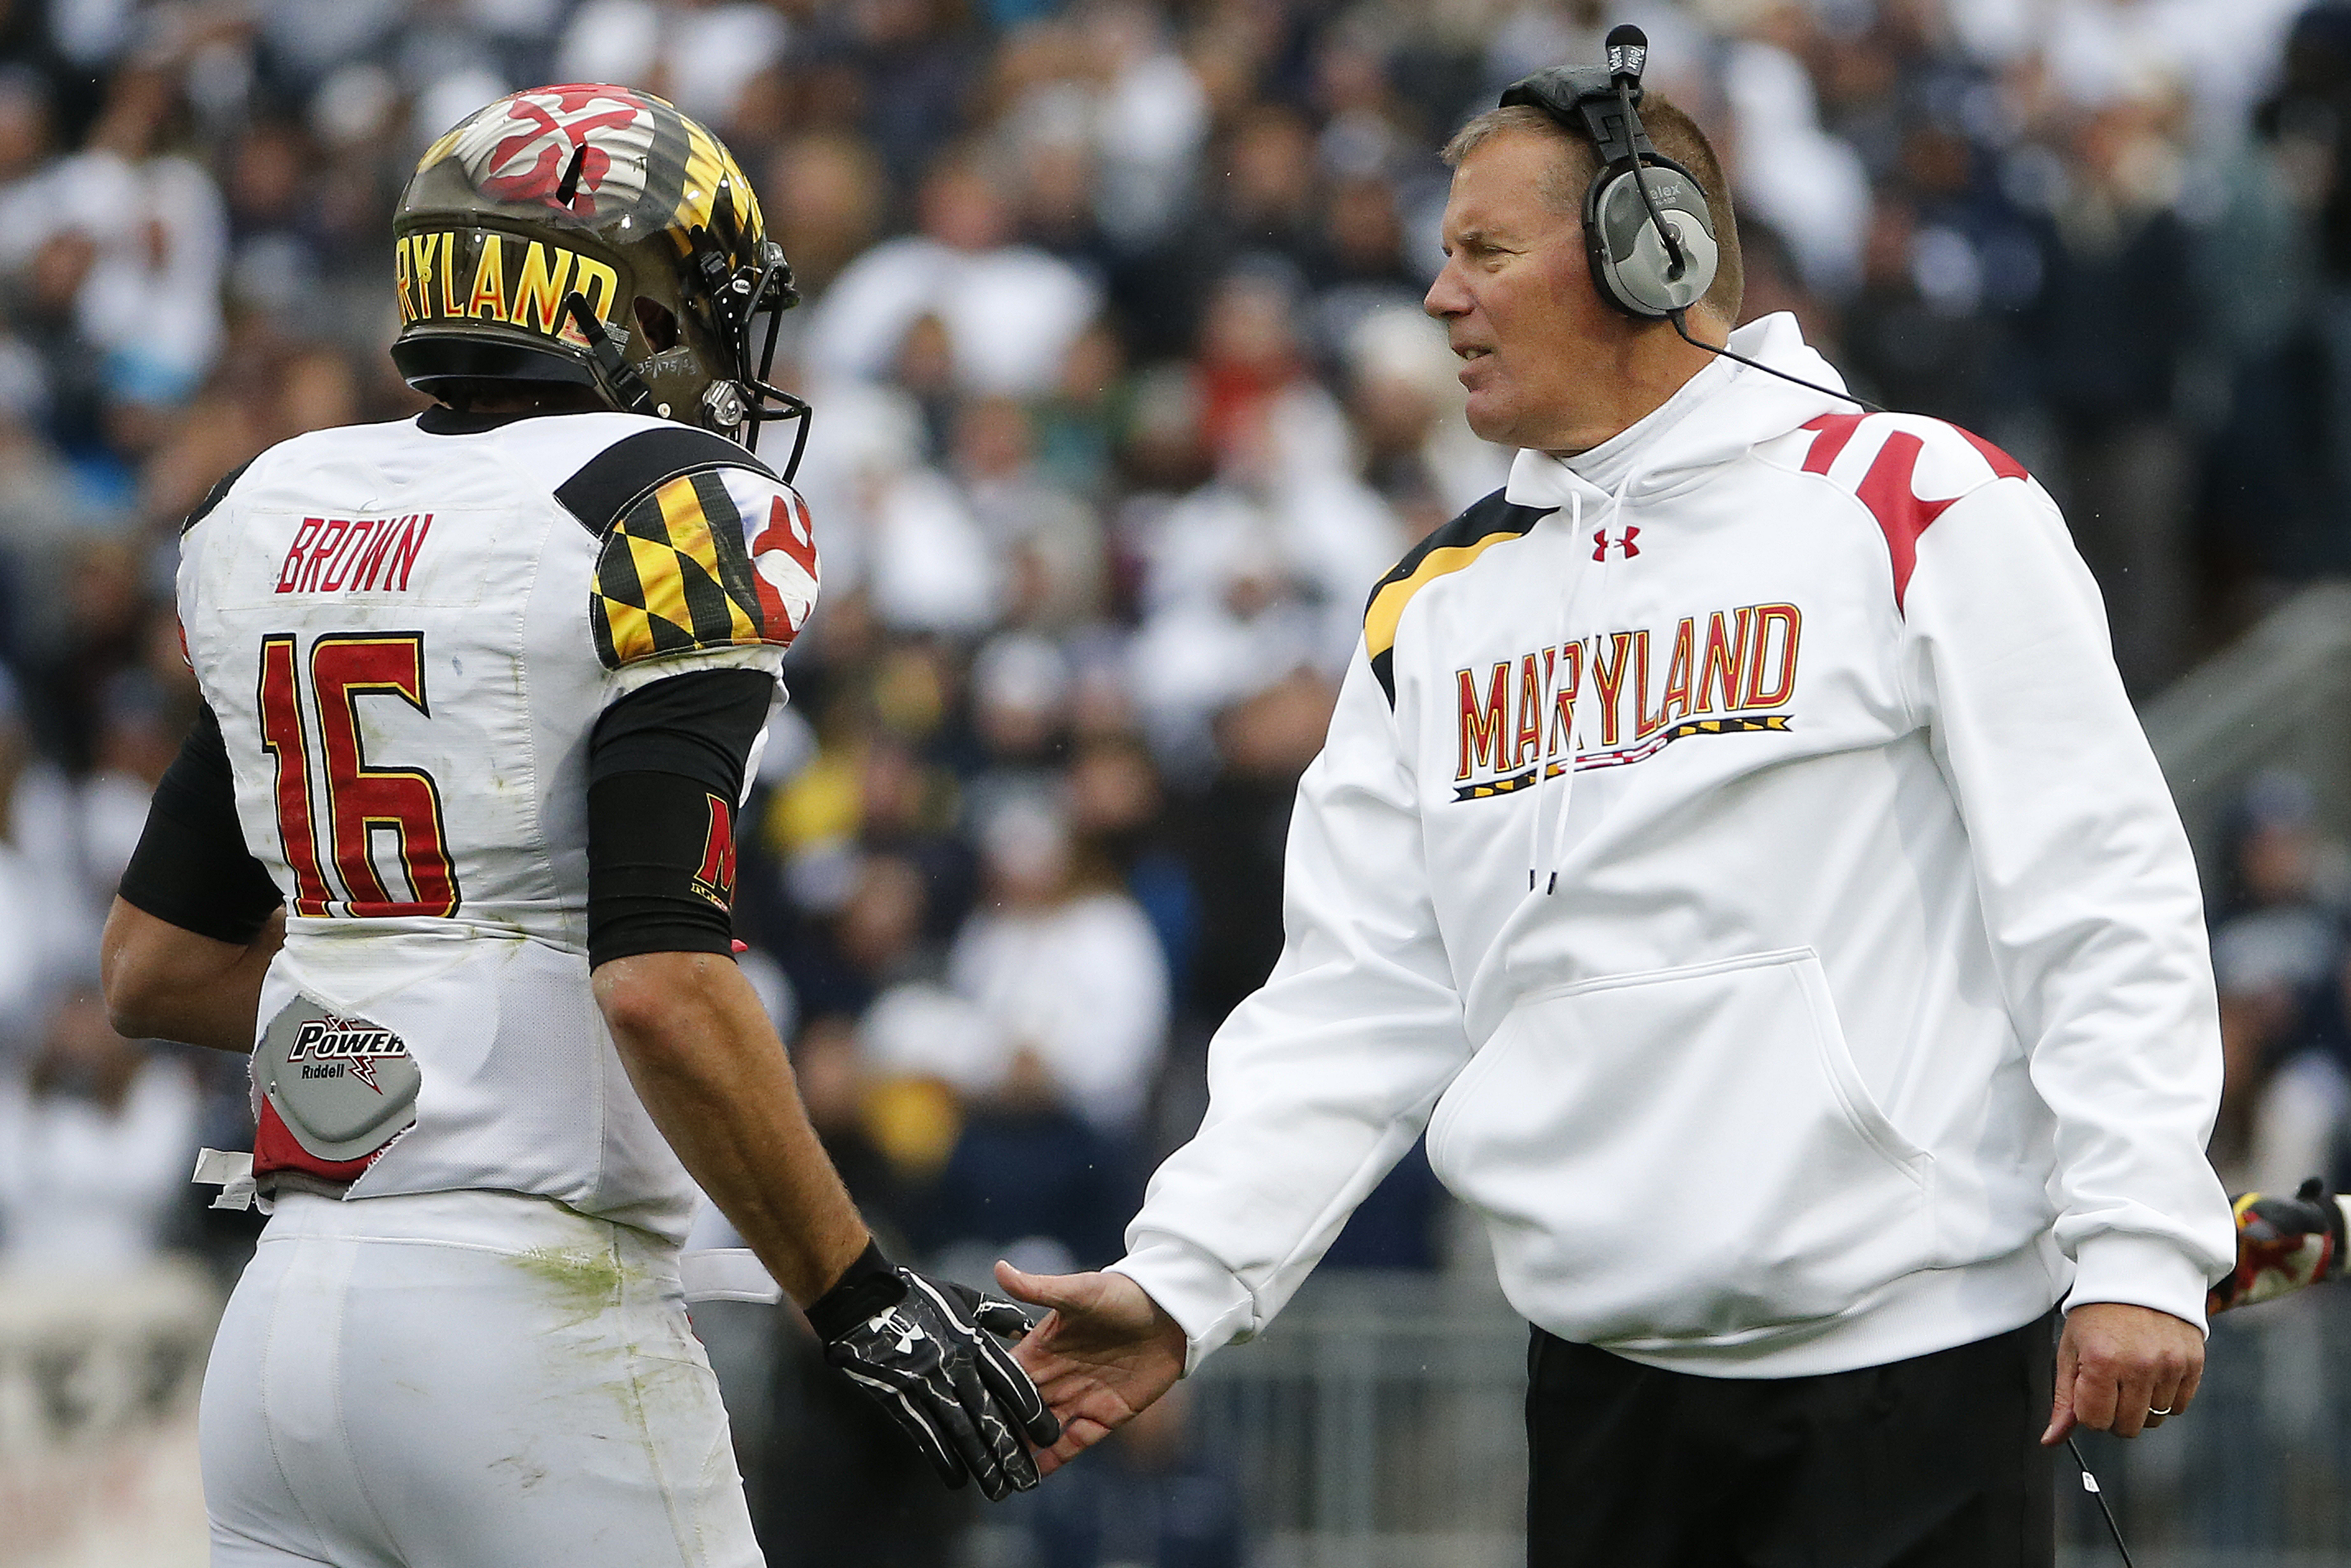 FILE - In this Nov. 1, 2014 file photo, Maryland head coach Randy Edsall, right, greets quarterback C.J. Brown as he returns to the sideline after throwing a touchdown pass during an NCAA college football game against Penn State in State College, Pa. The